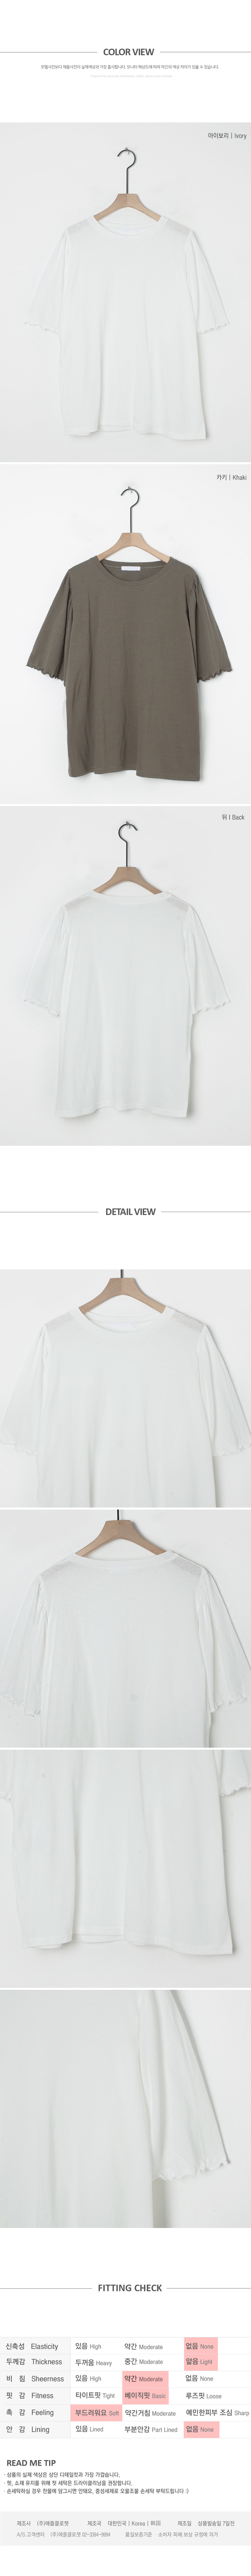 Recommended Comfort T-shirt